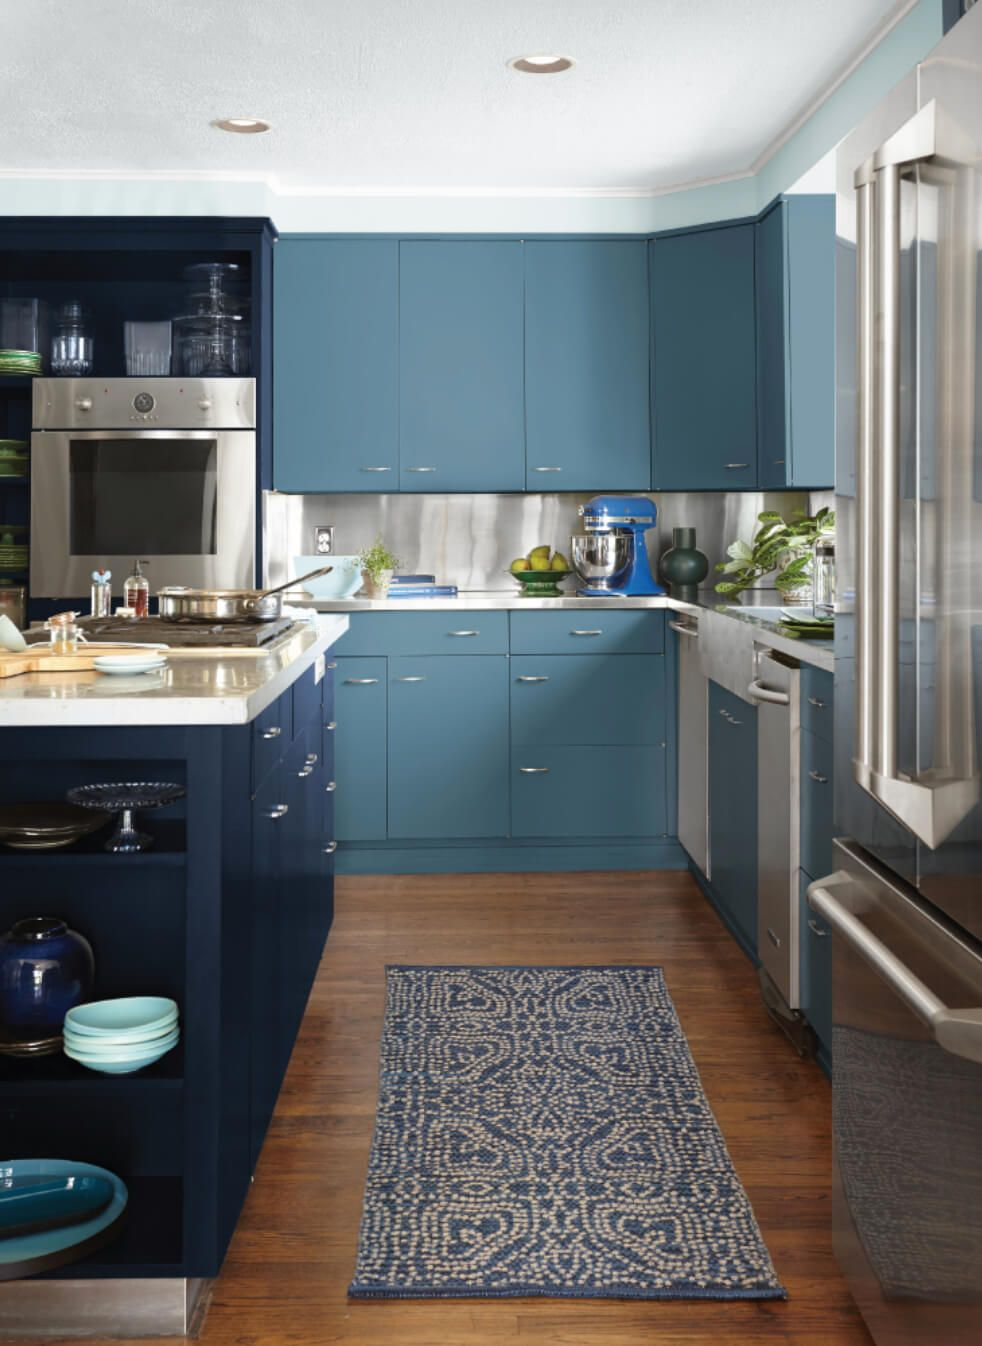 Decorating Ideas For Behr Blueprint 2019 Color Of The Year Https Freshome C Kitchen Cabinet Colors Kitchen Cabinets Kitchen Cabinets With Black Appliances